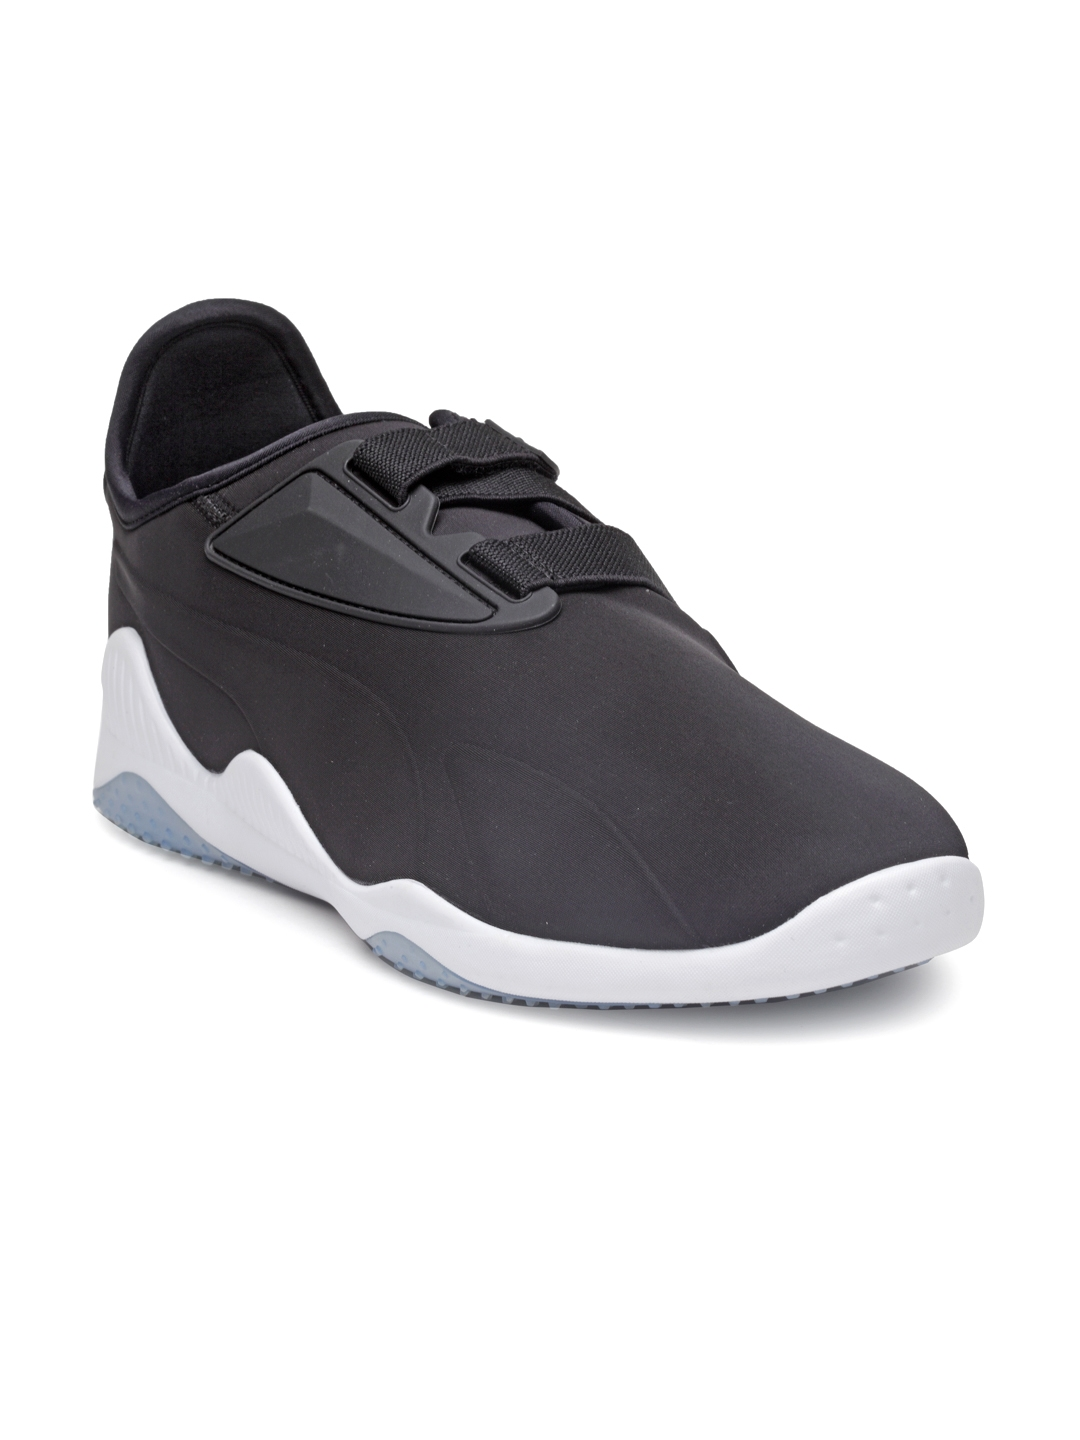 a5f140225d8862 Buy Puma Men Black Mostro Core Tex Sneakers - Casual Shoes for Men ...